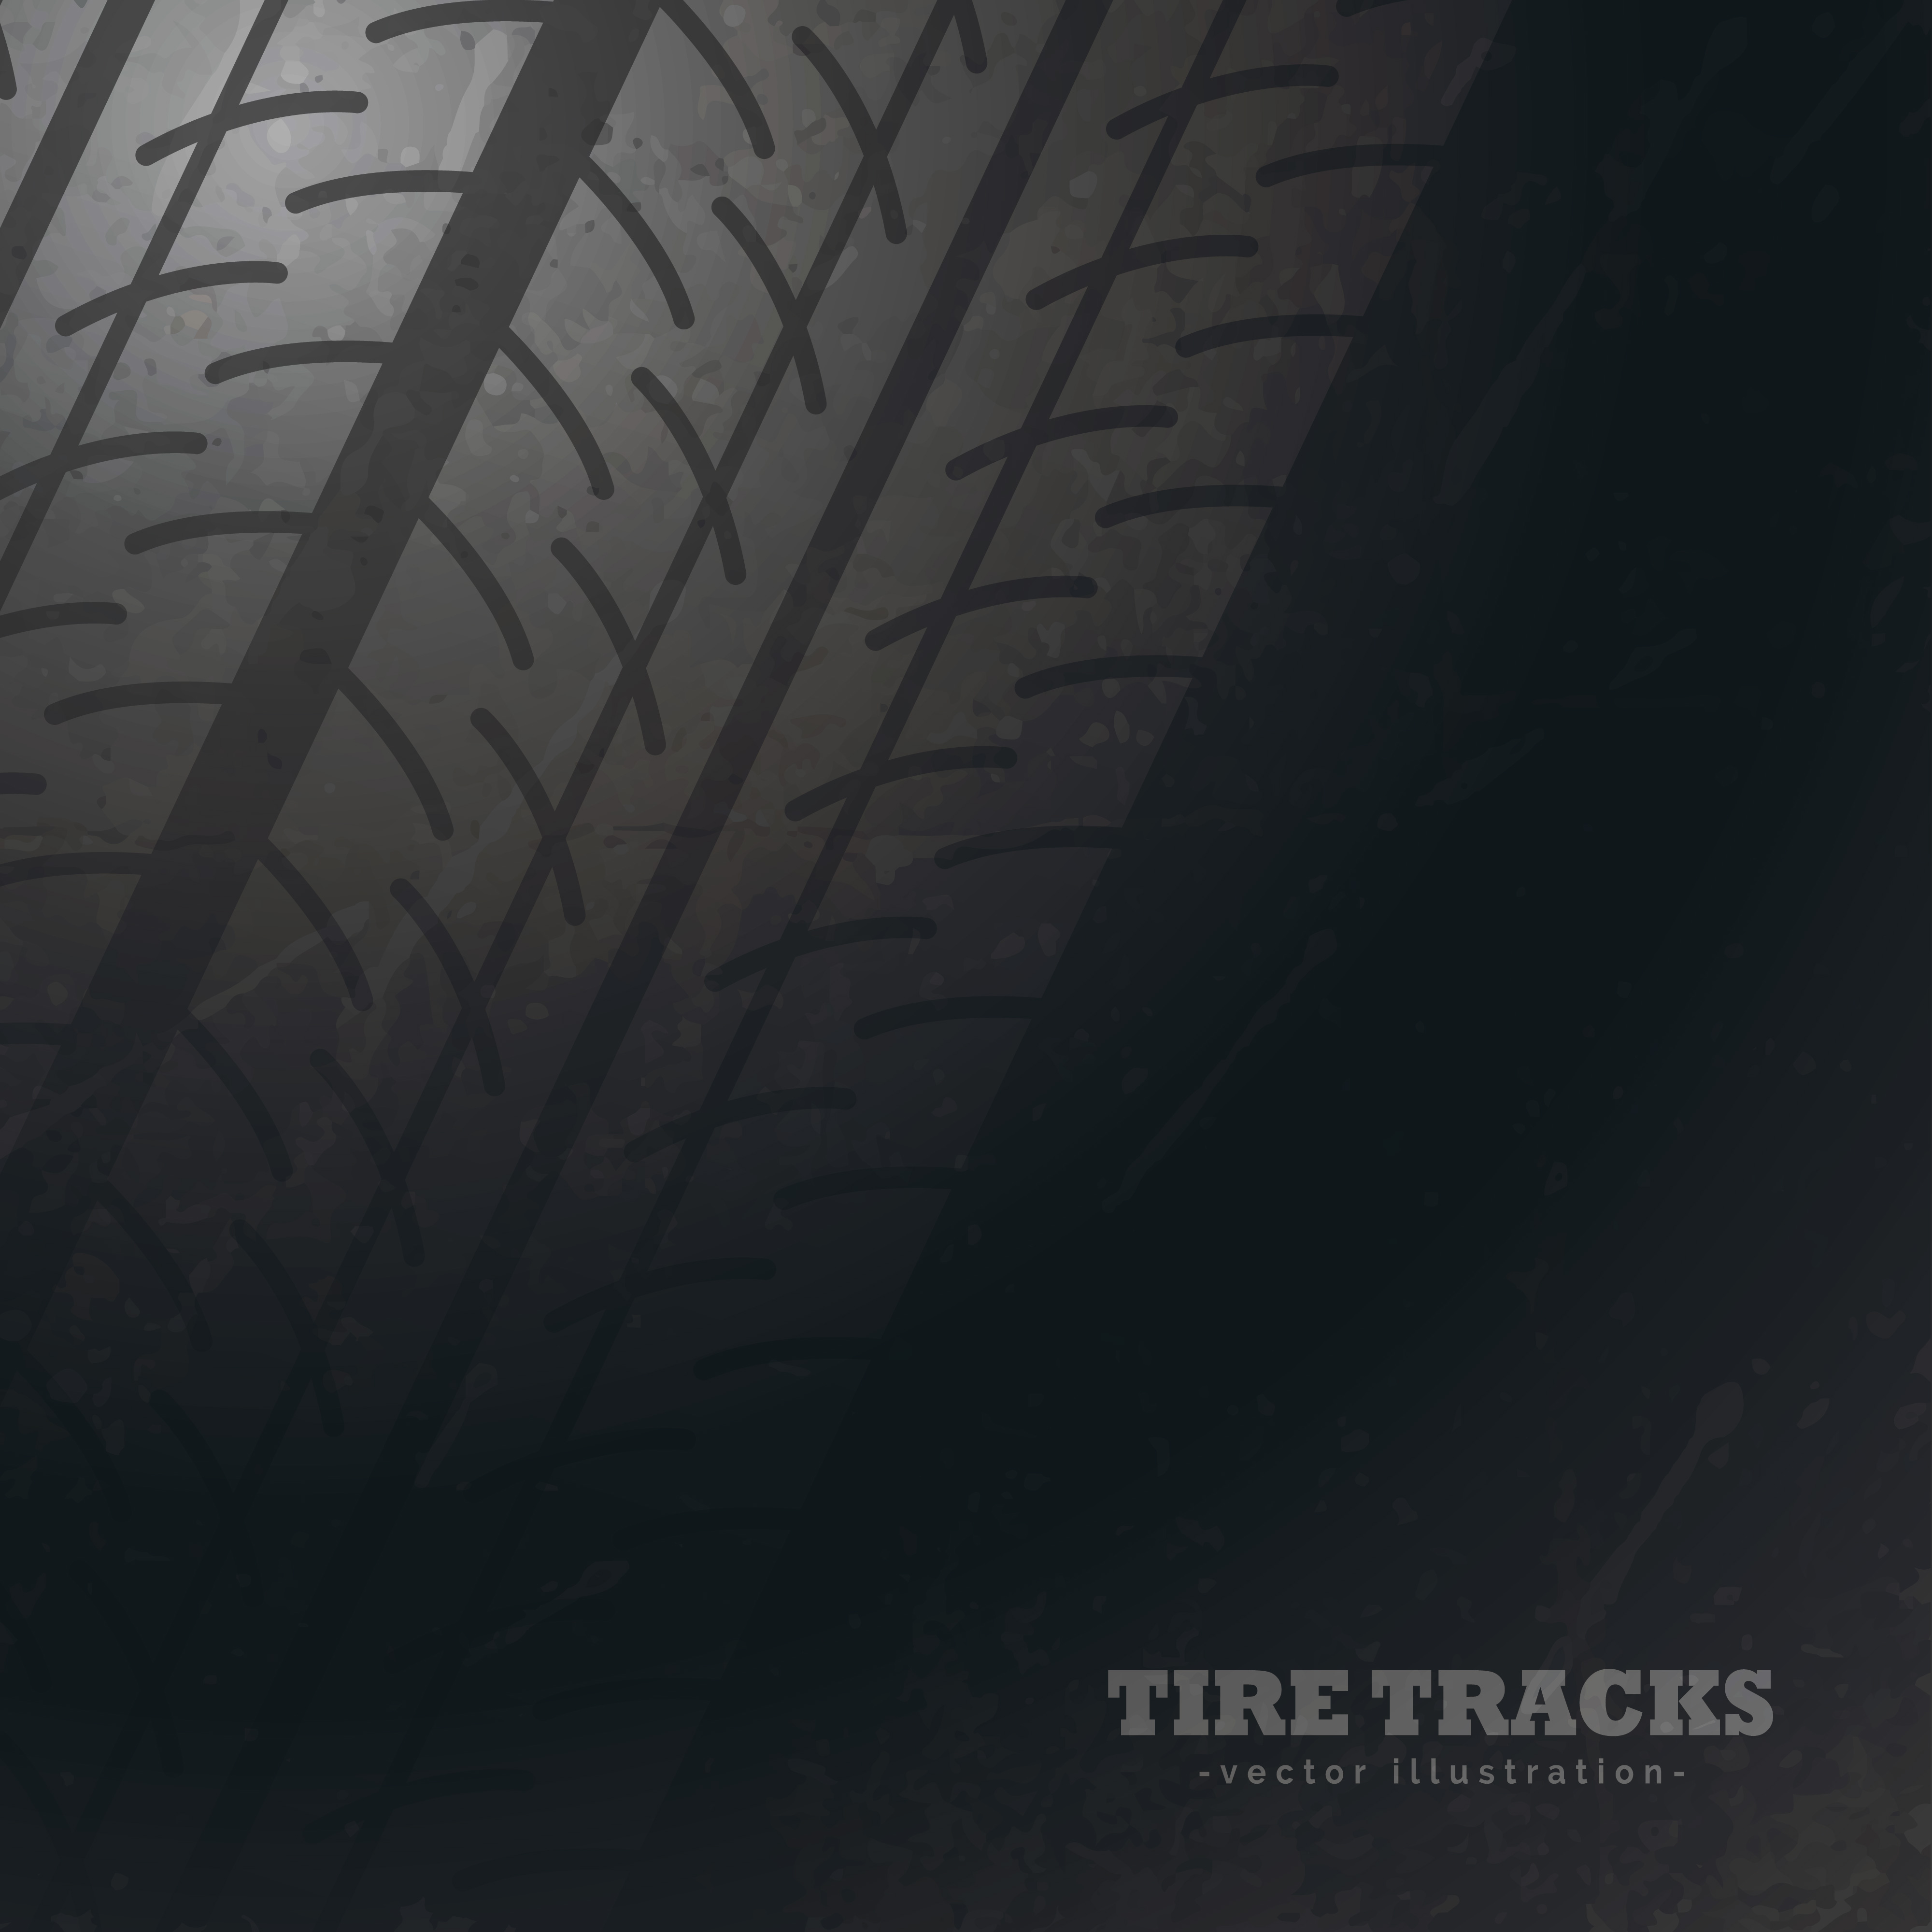 Fast And Furious Car Wallpaper Download Dark Background With Tire Tracks Marks Download Free